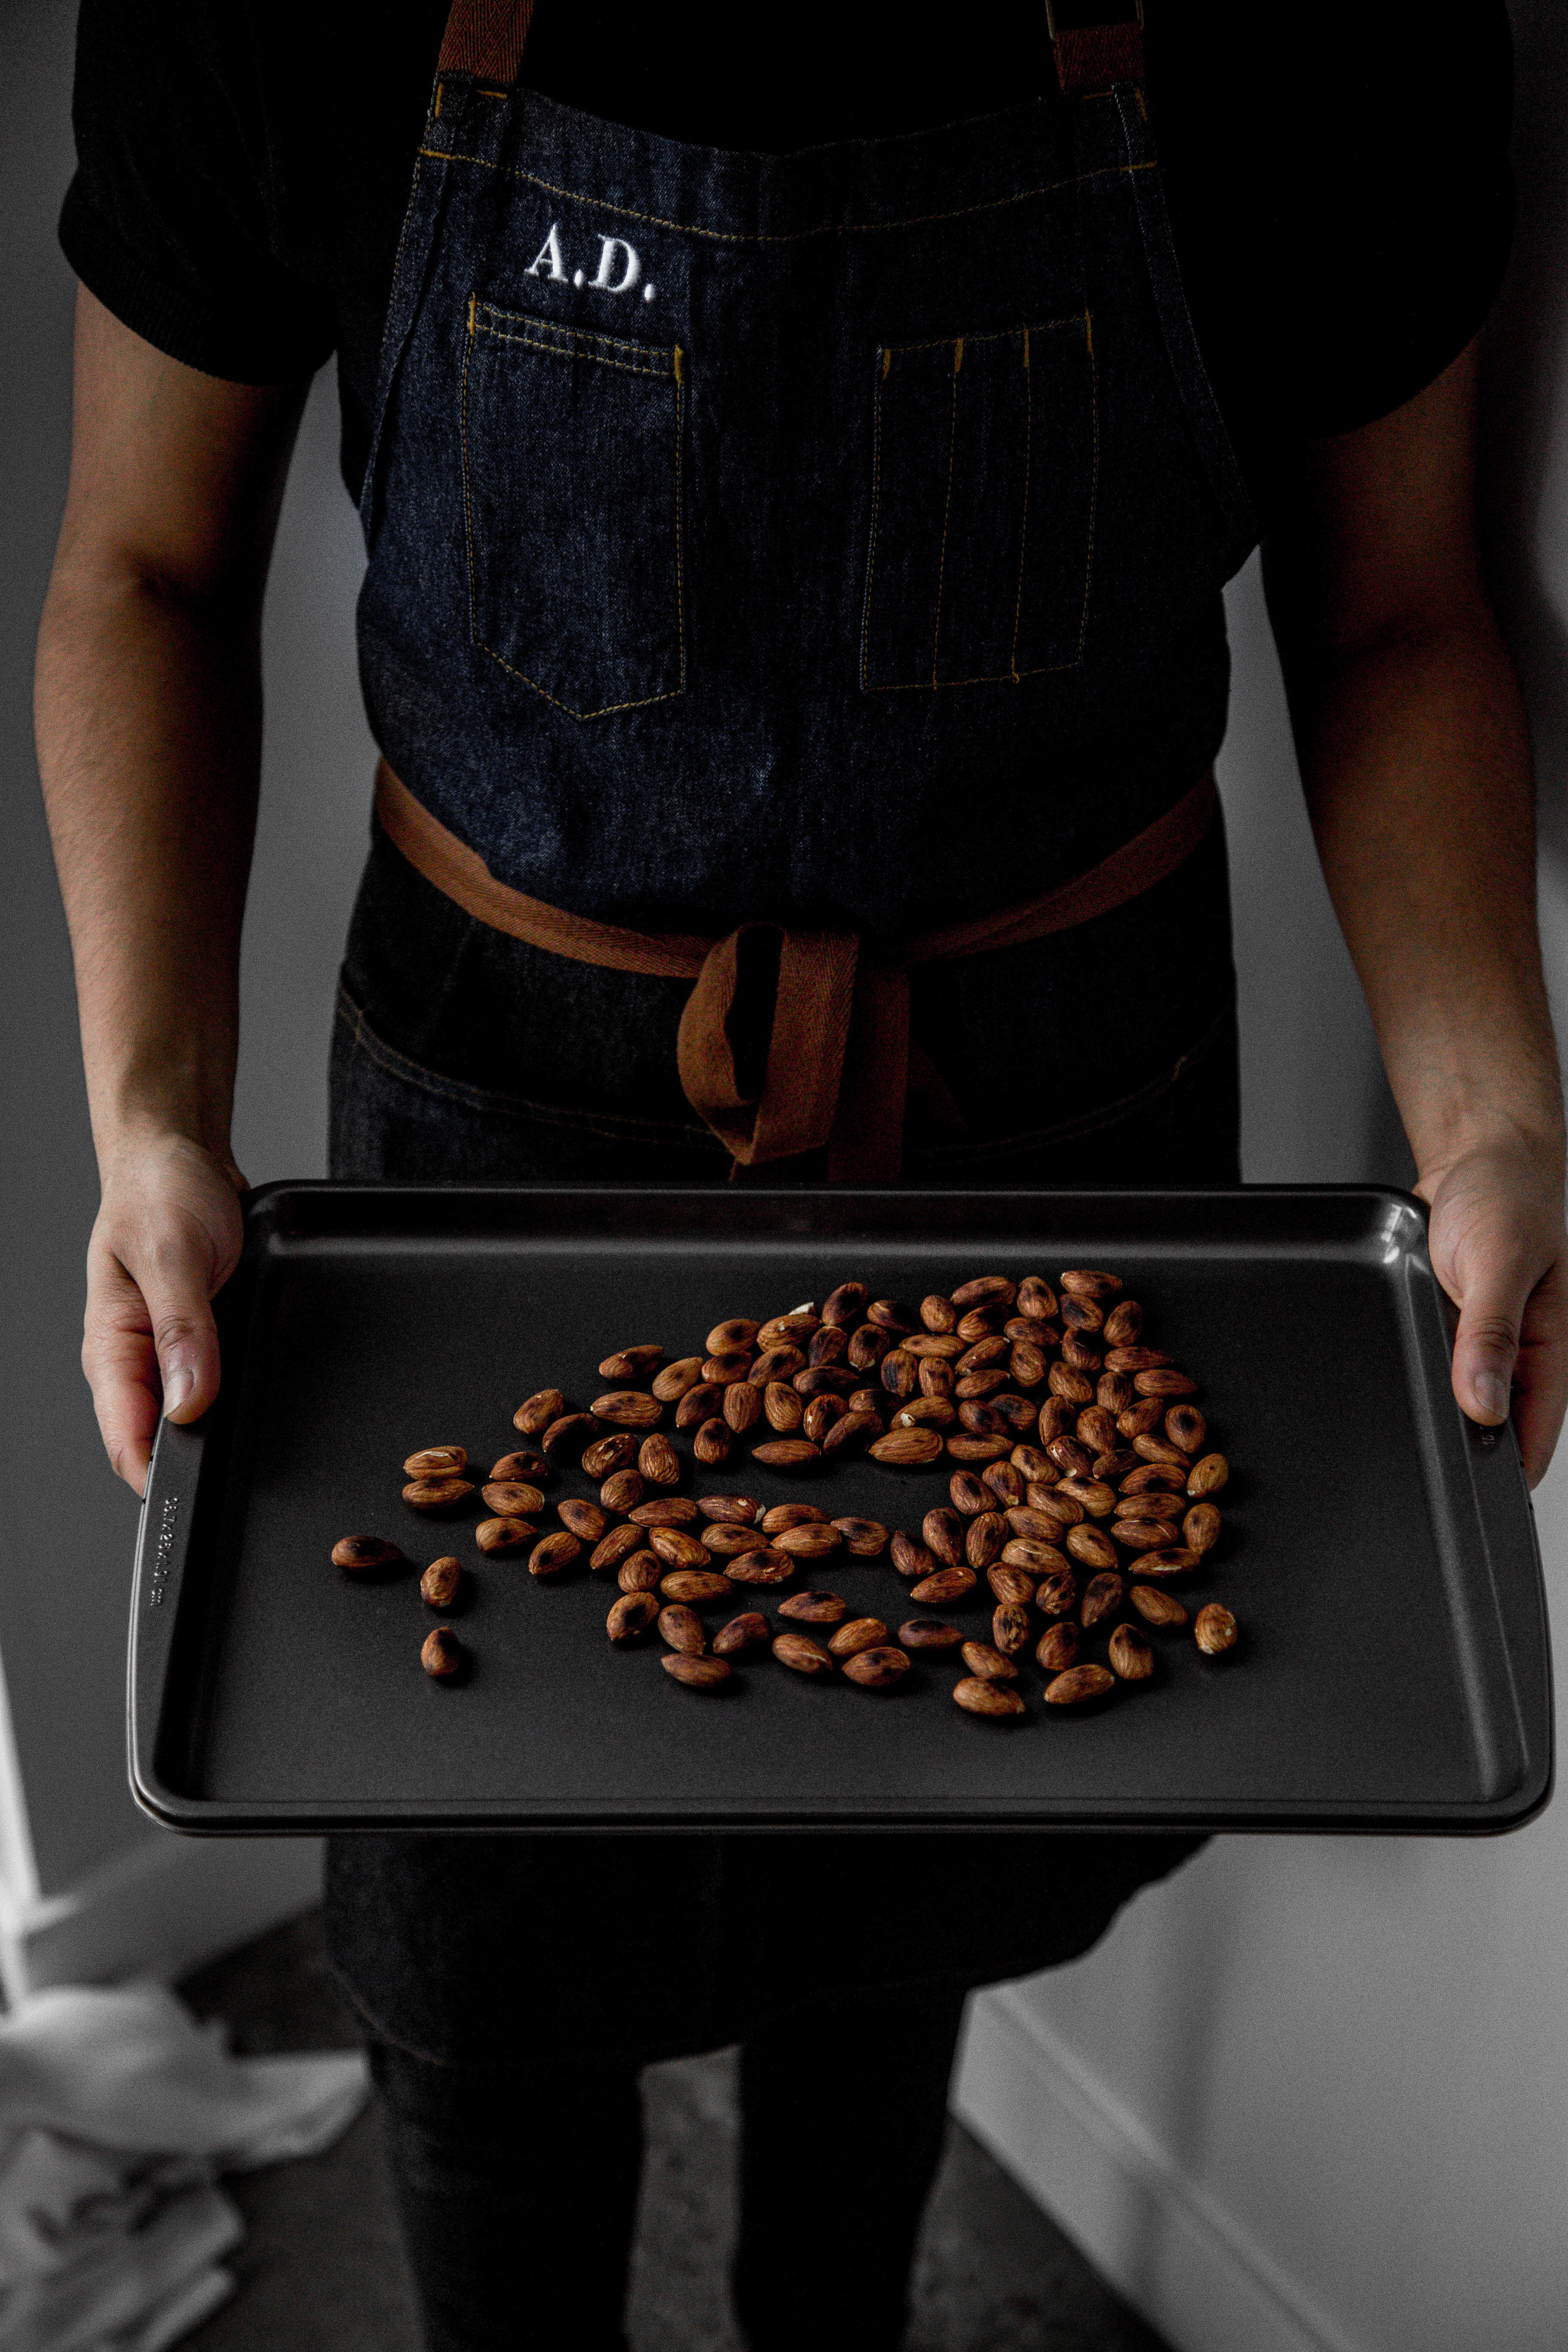 step one. - toast almonds in a dry pan. place on baking tray and allow it to cool.